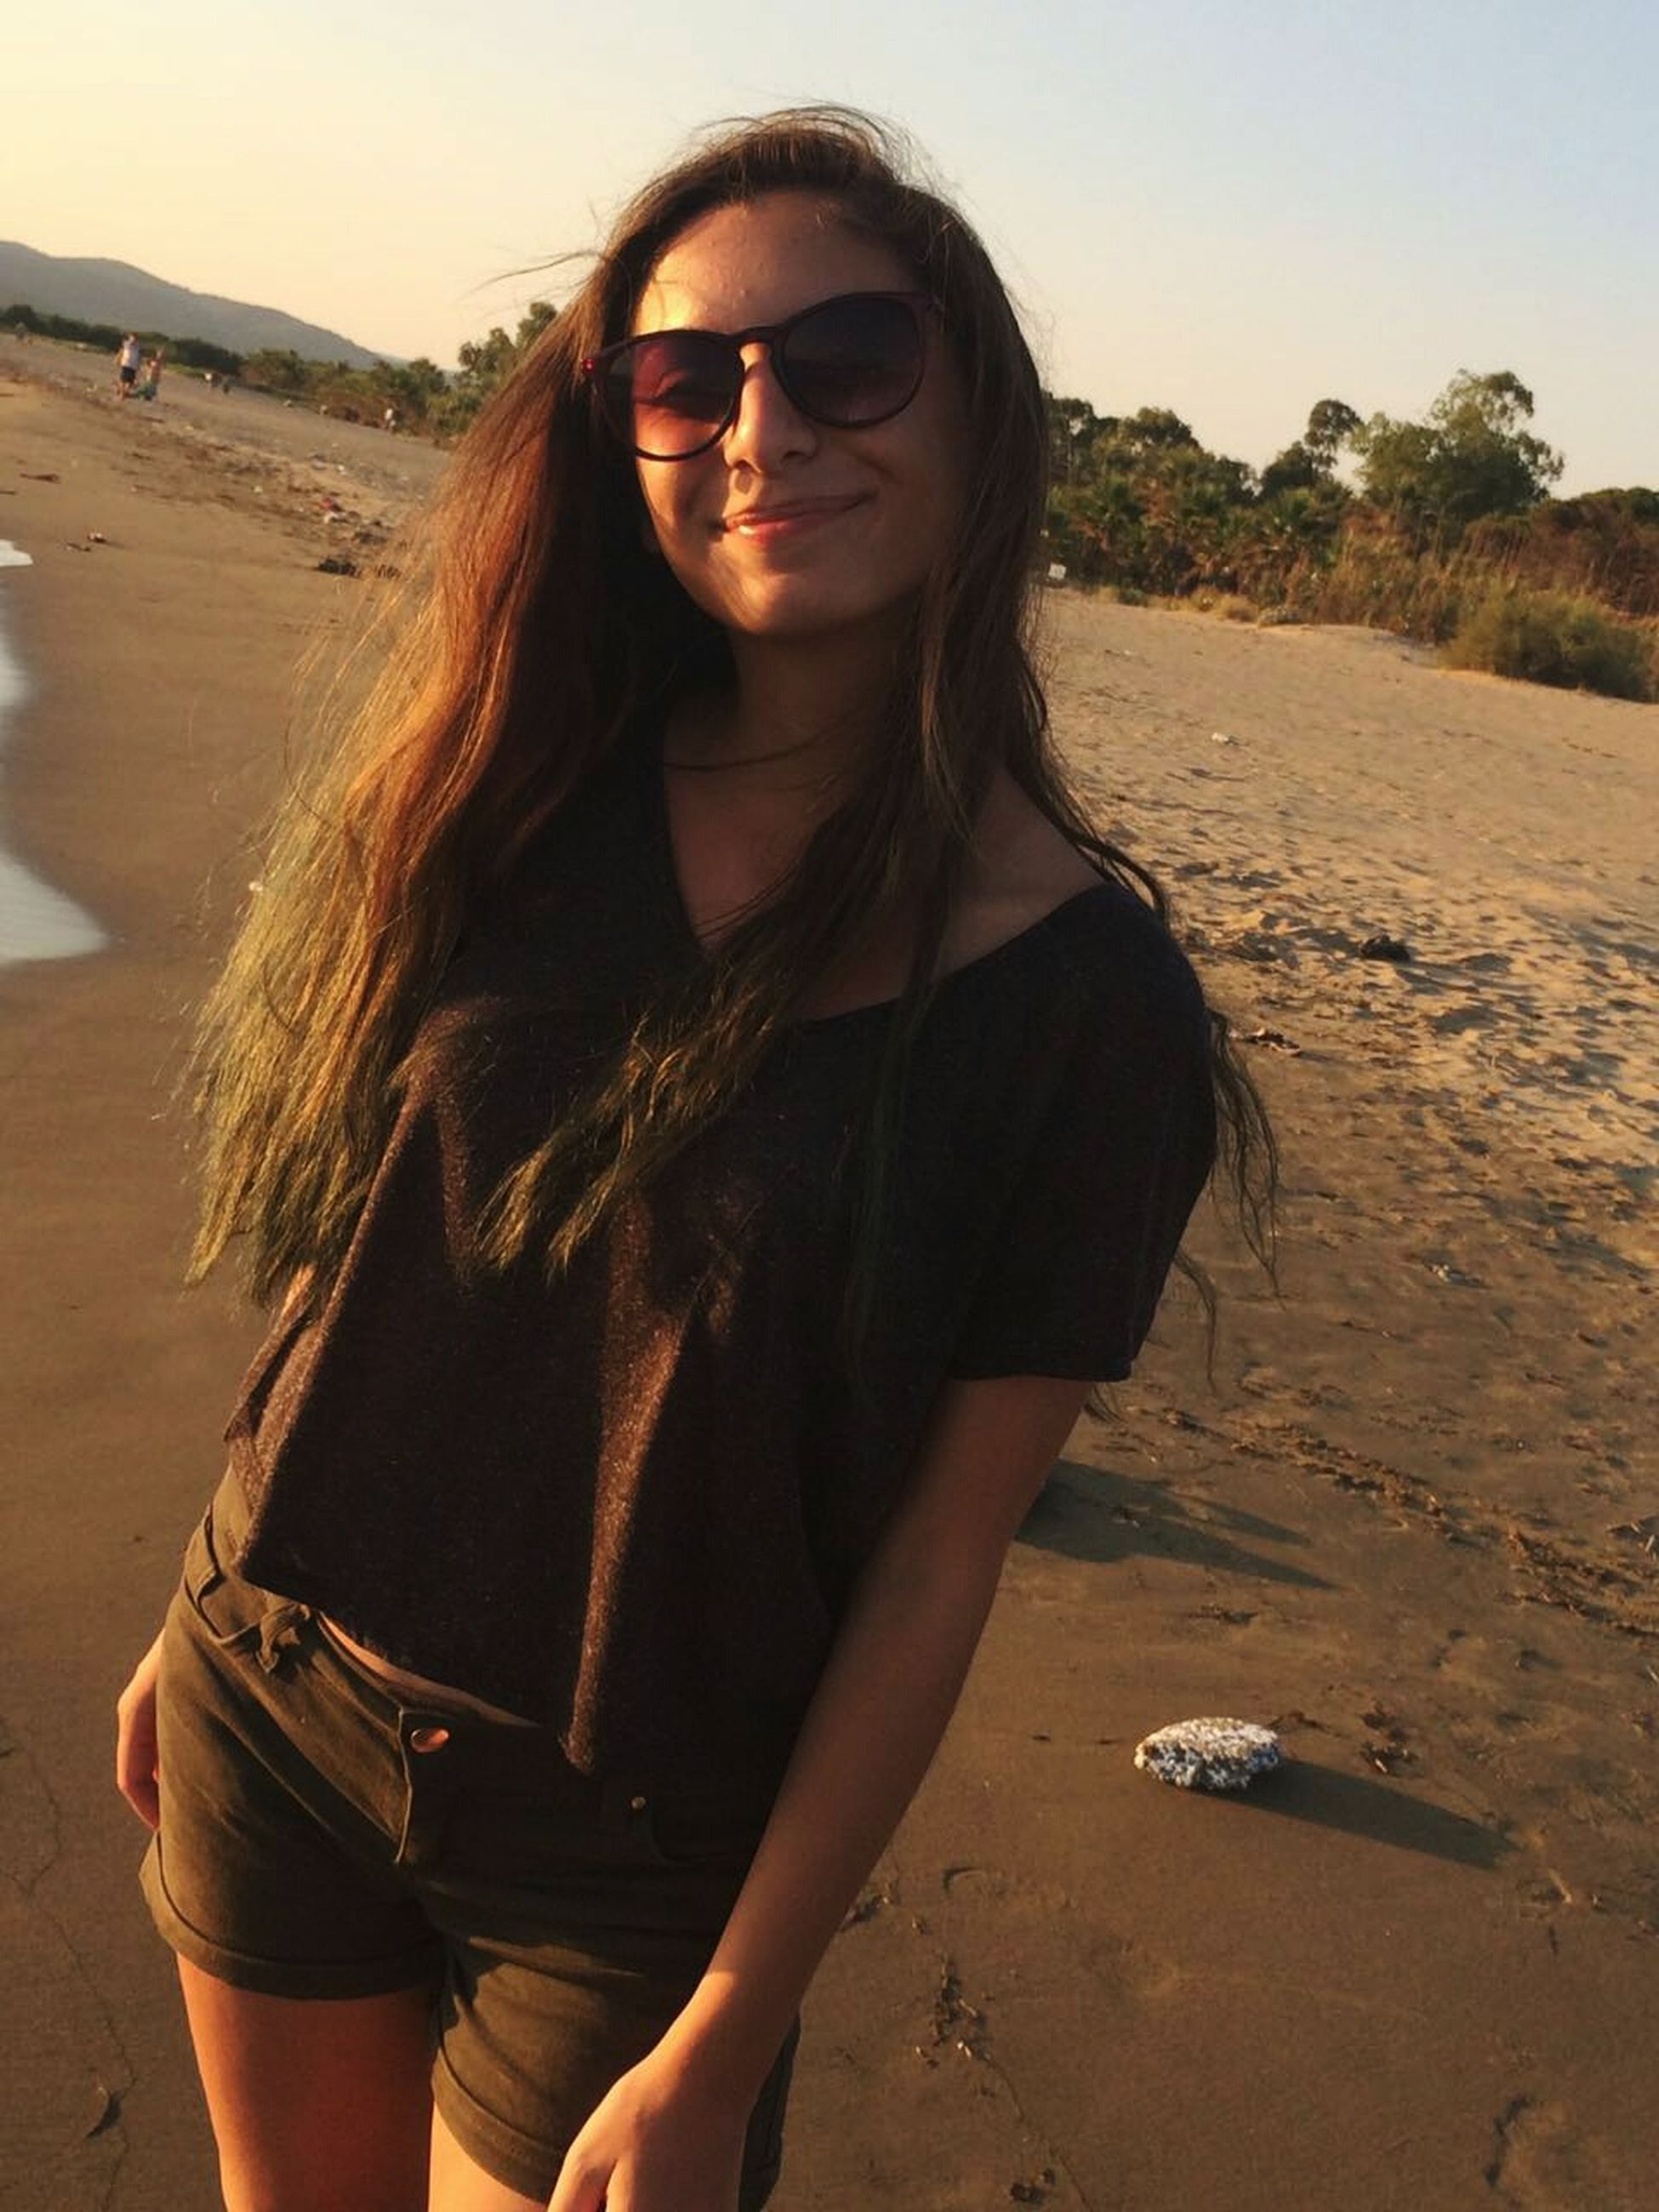 sunglasses, young adult, long hair, portrait, beach, fashion, one person, one woman only, beautiful woman, adult, young women, beauty, adults only, happiness, sunset, sand, people, smiling, one young woman only, outdoors, only women, nature, day